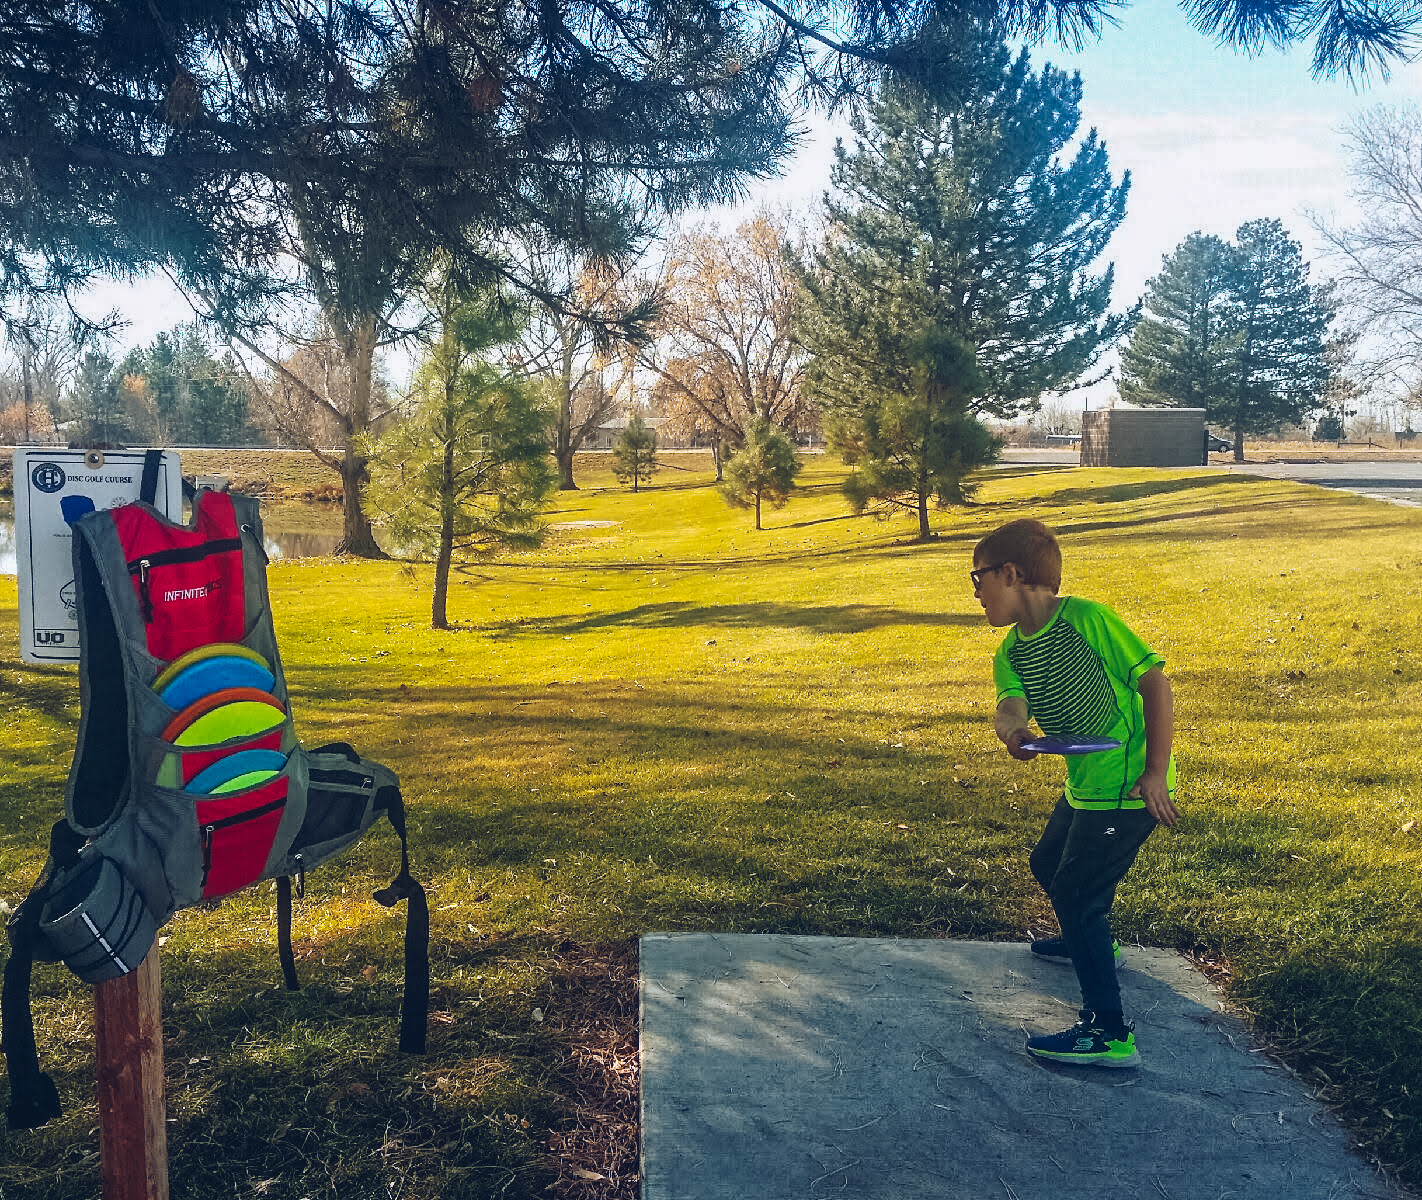 Harrisville City Park Disc Golf Course